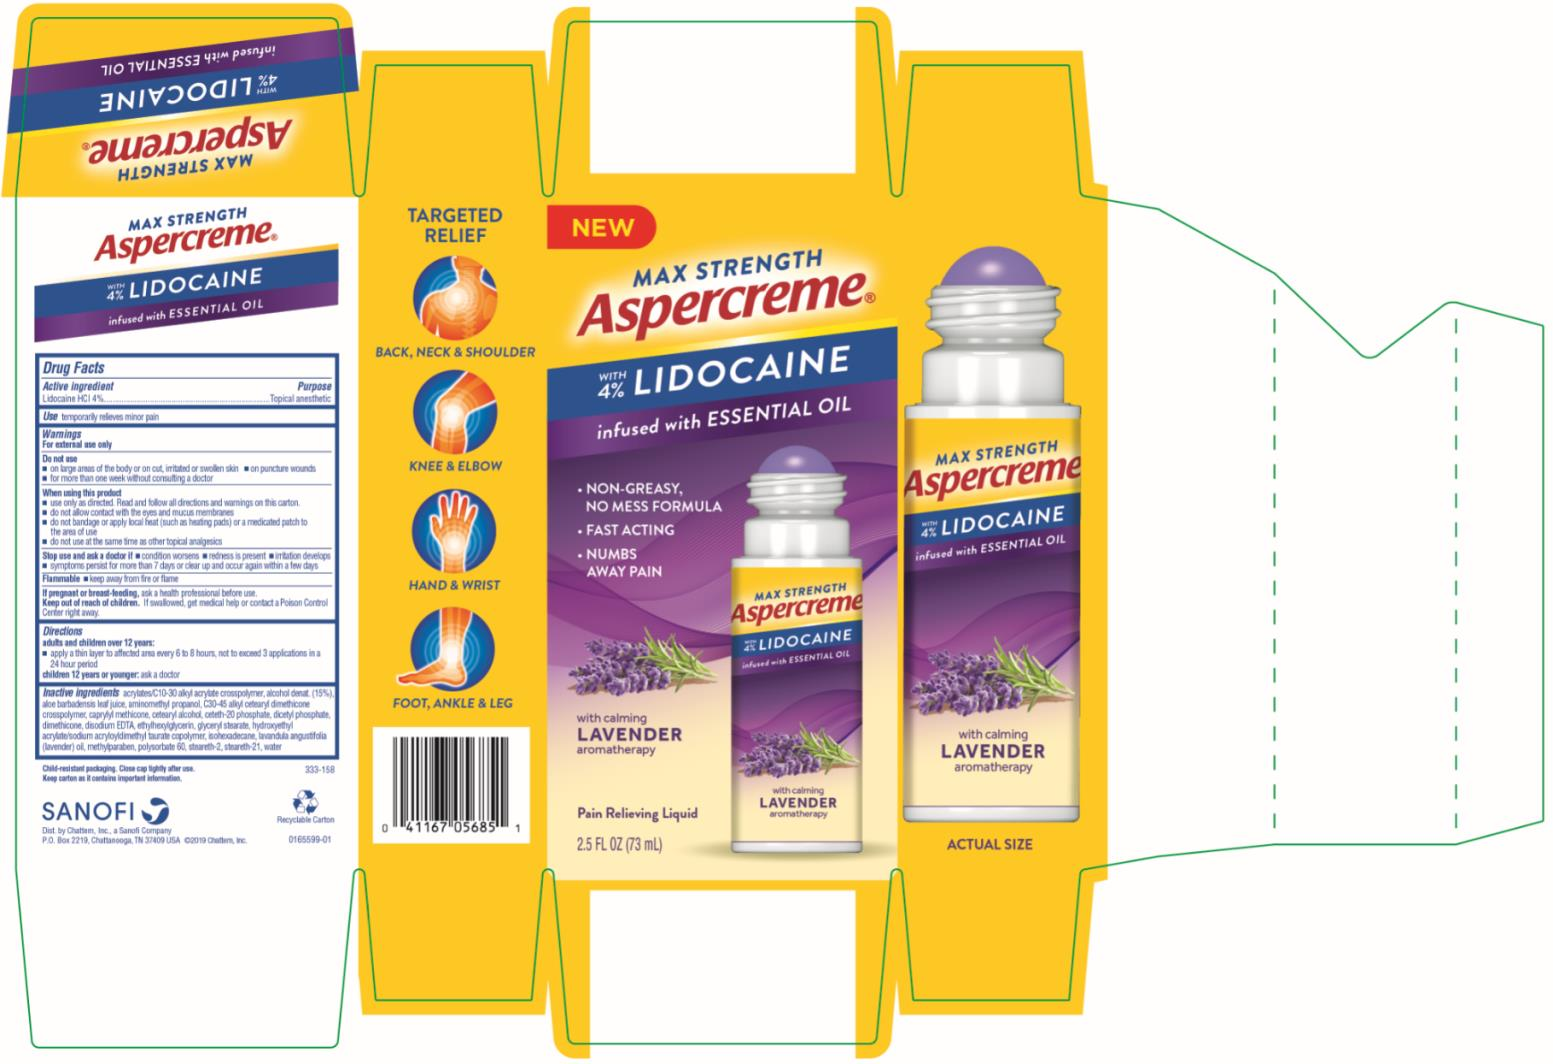 PRINCIPAL DISPLAY PANEL Max Strength Aspercreme with 4% LIDOCAINE infused with ESSENTIAL OIL LAVENDER 2.5 FL OZ (73 mL)